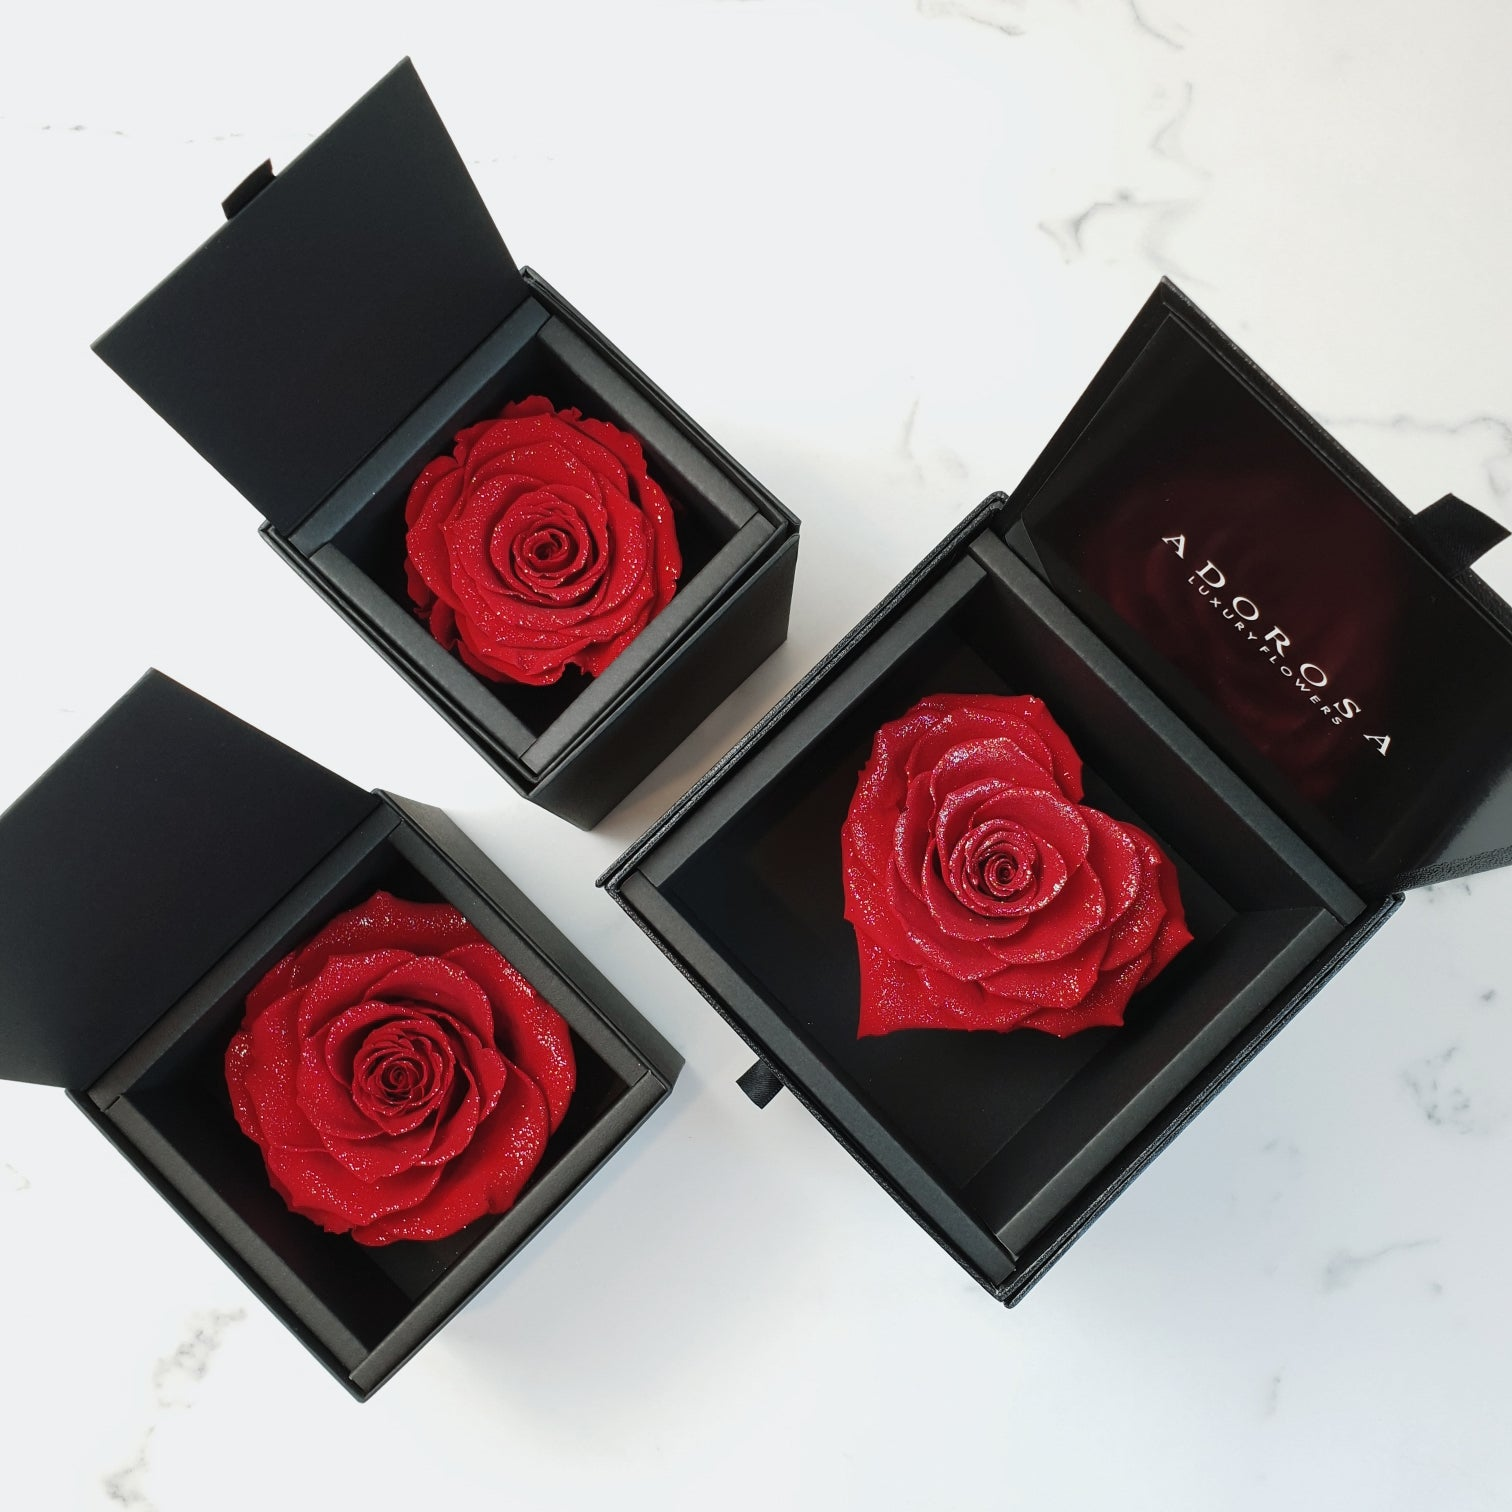 heart rose, jewelry box, rose box, heart rose box, long lasting rose, preserved roses, preserved flowers, sydney rose delivery, luxury rose sydney, rose box sydney, flower box sydney